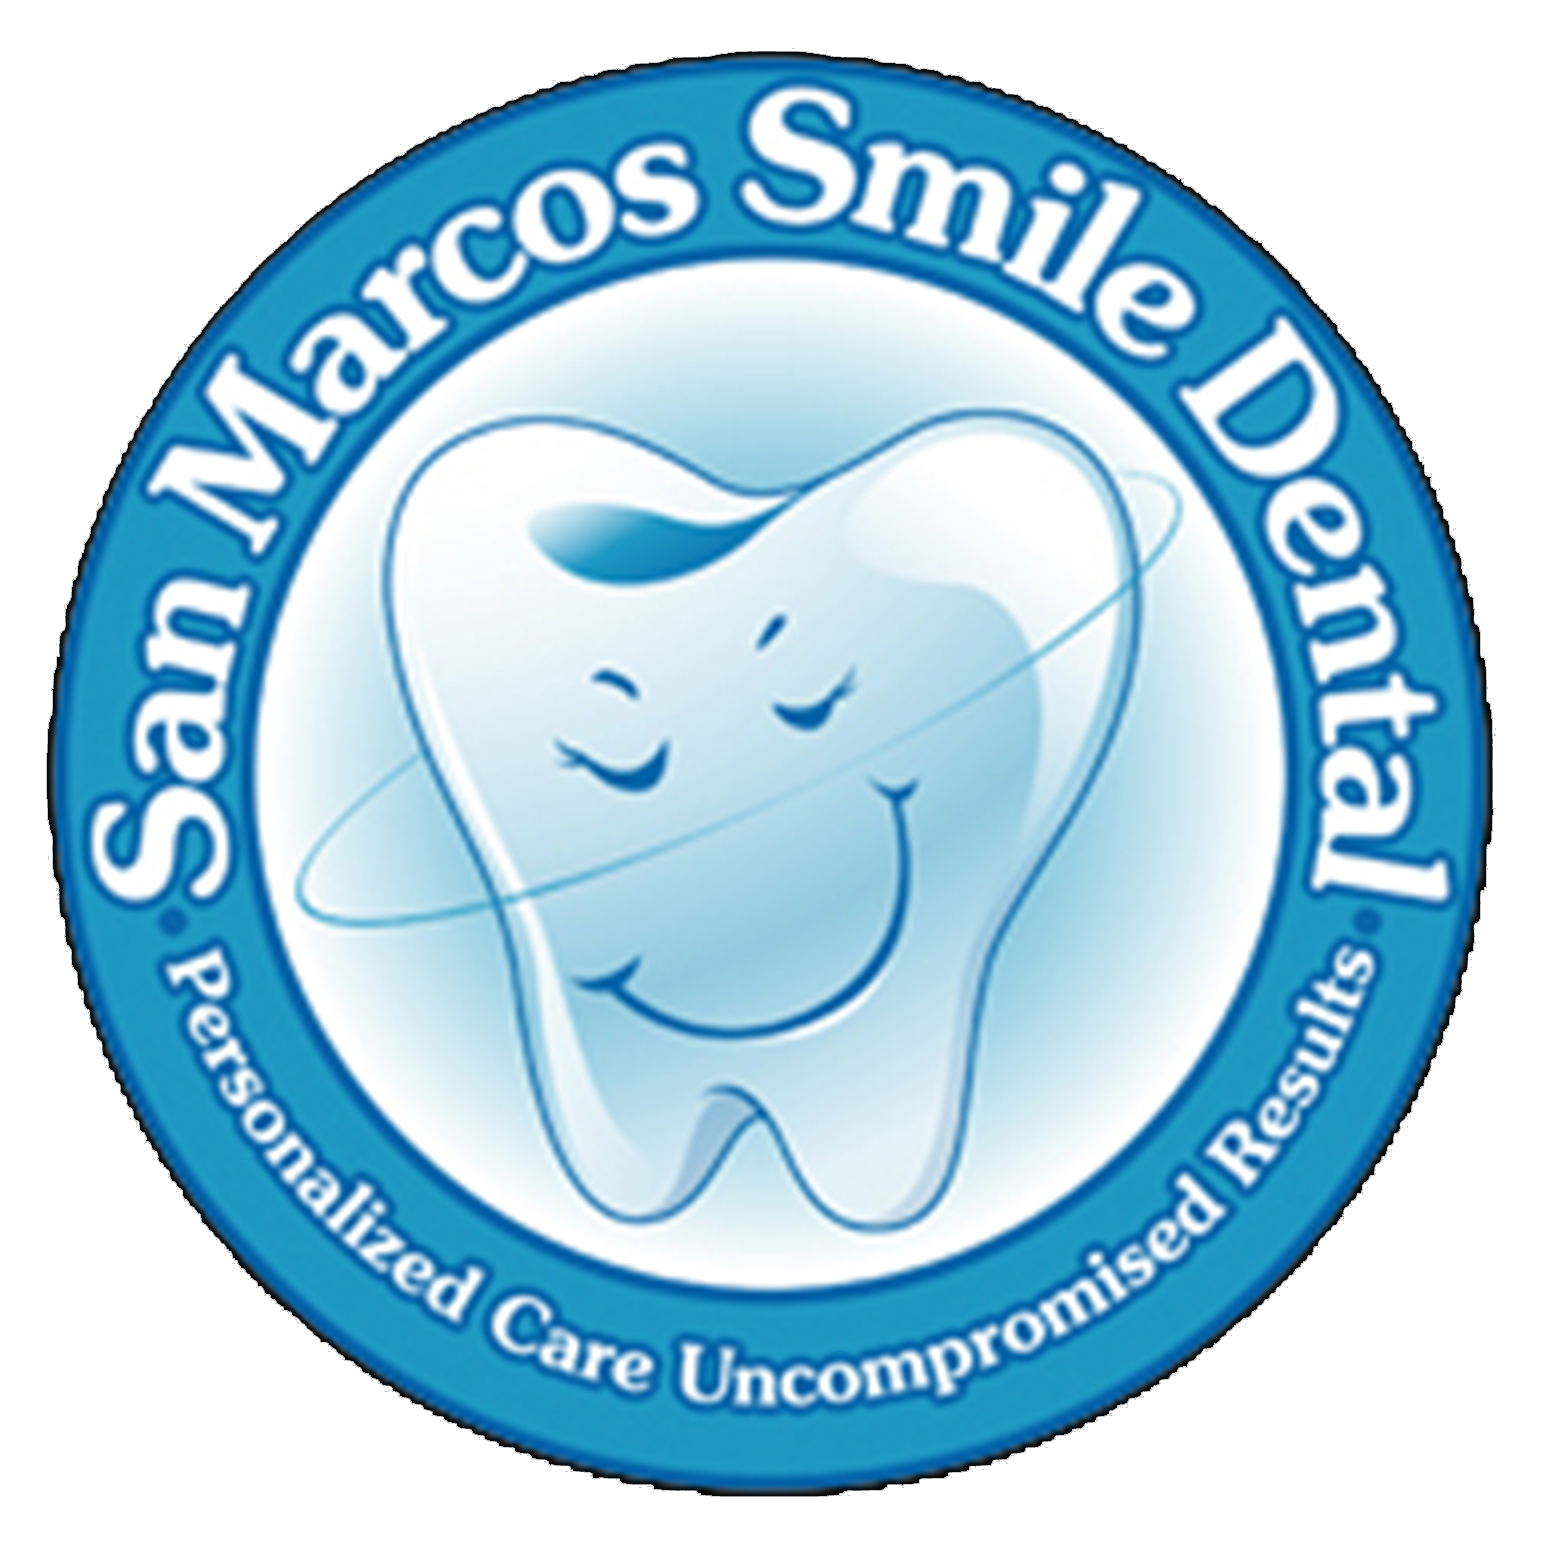 San Marcos Smile Dental